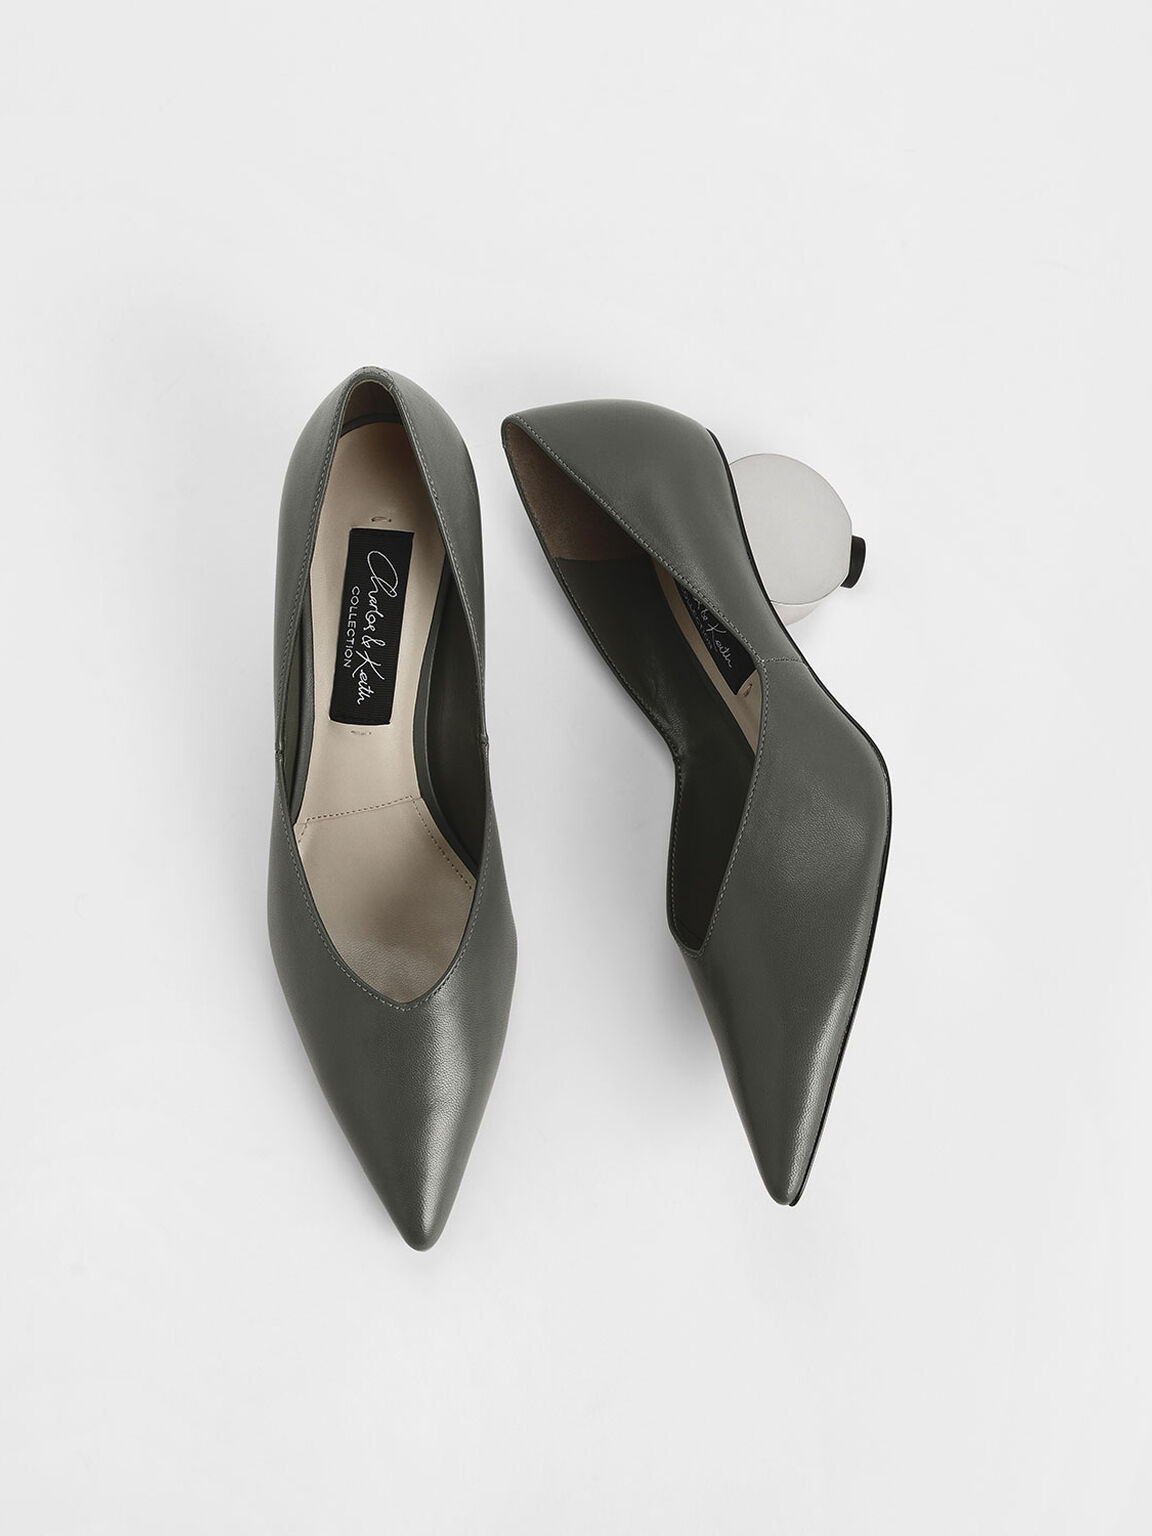 V-Cut Sculptural Heel Leather Pumps, Sage Green, hi-res